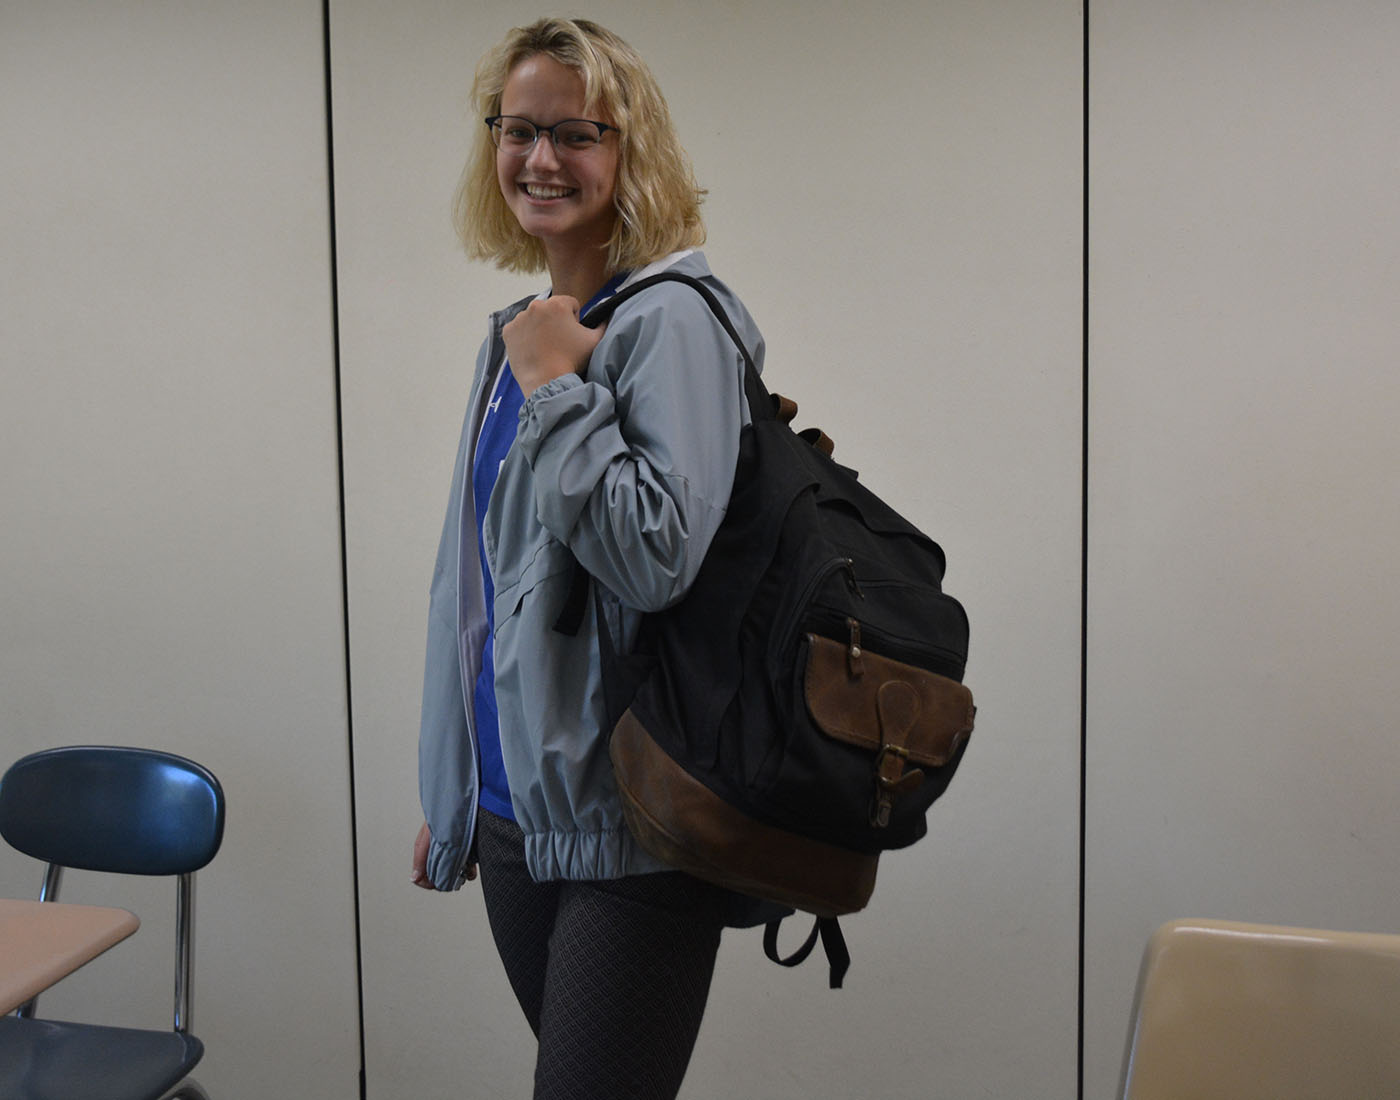 Junior Lily Sampson happy that she gets to wear her backpack around school